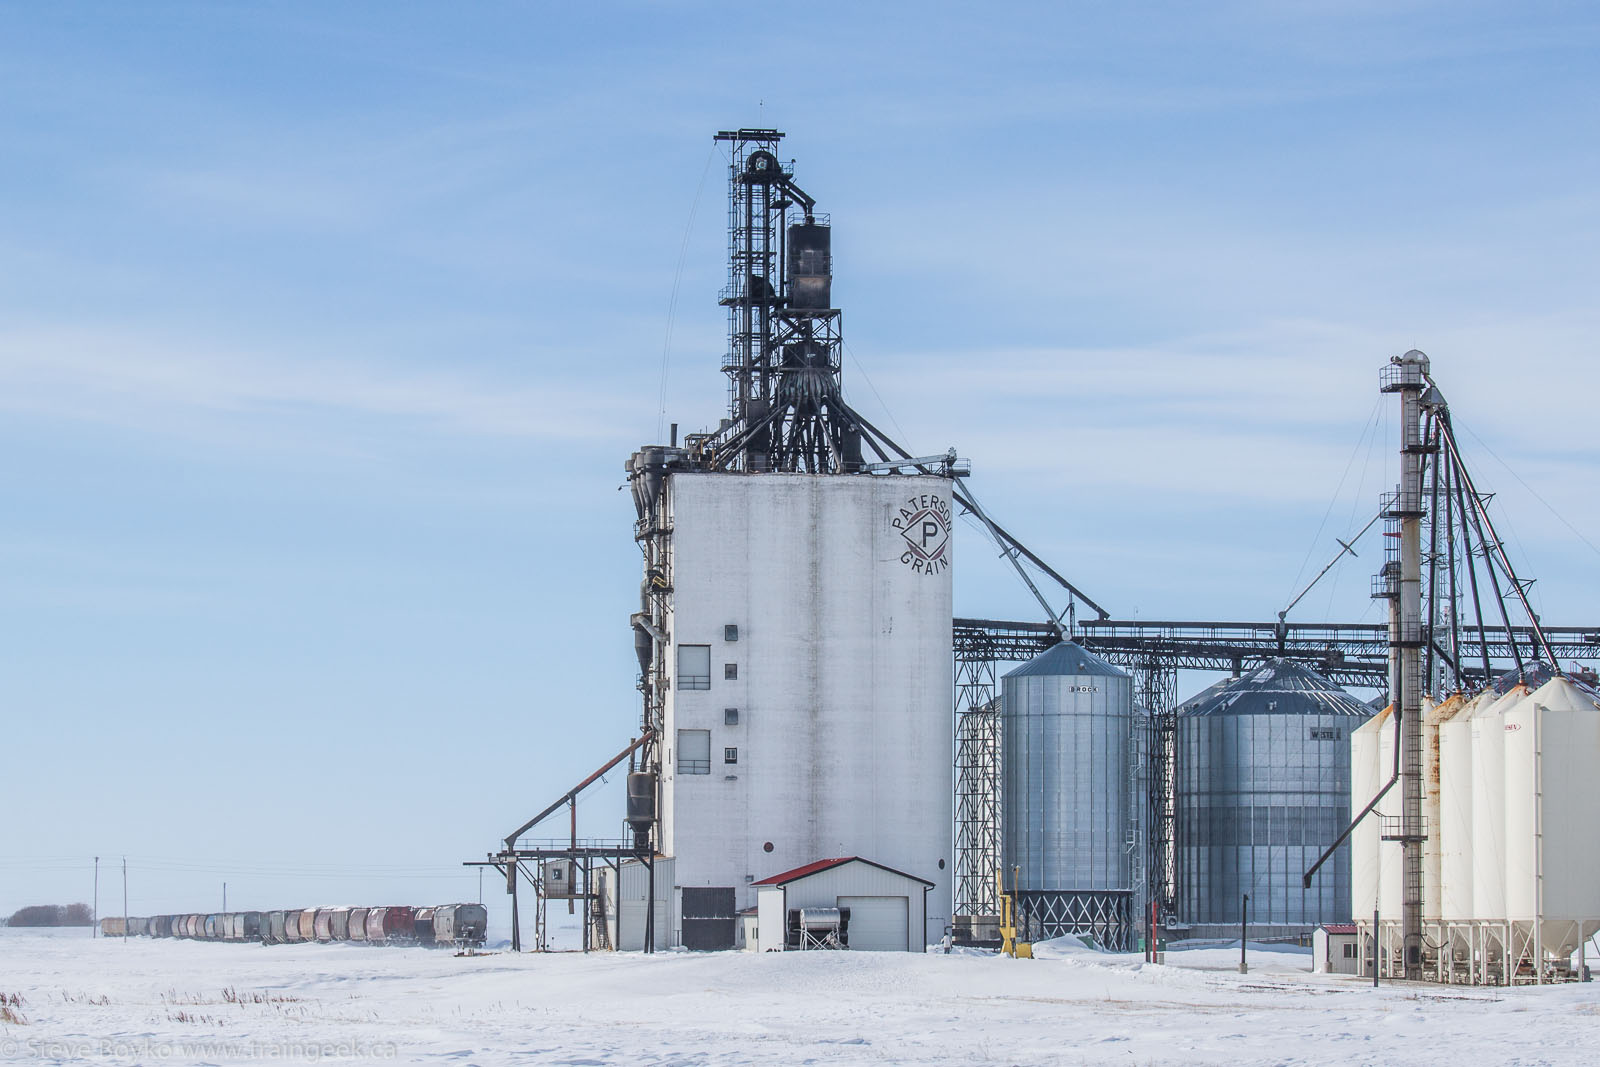 The new Paterson elevator in Morris, Manitoba 2014/02/23